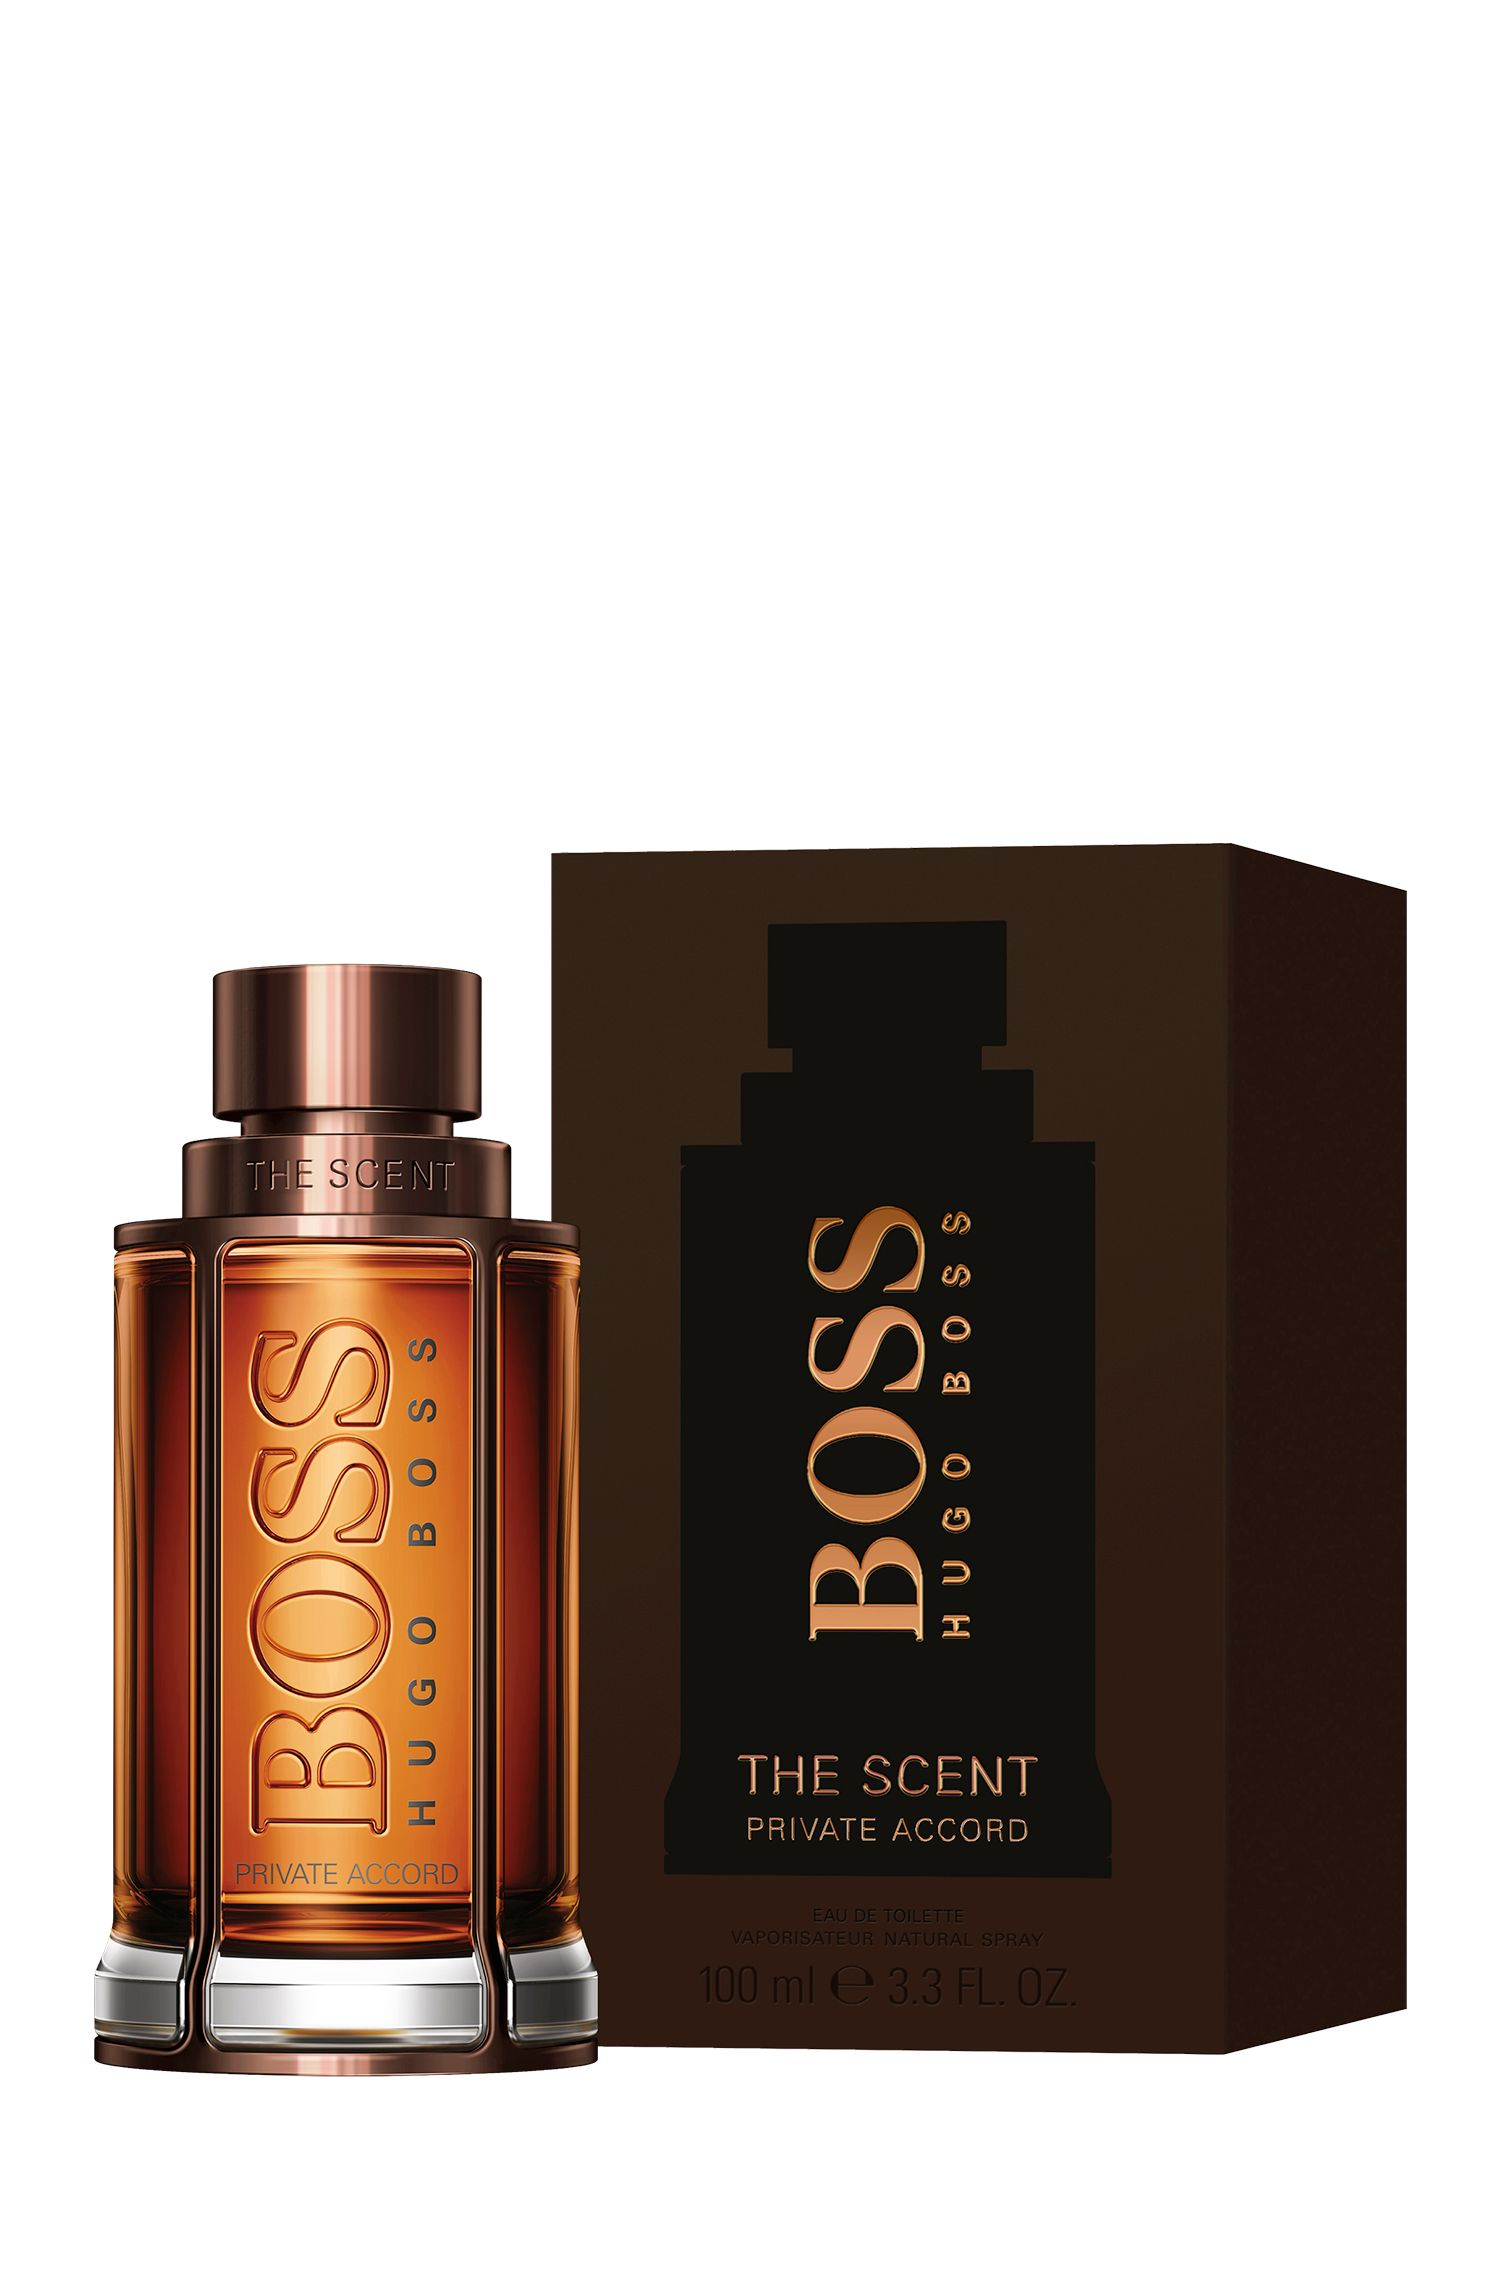 BOSS The Scent Private Accord for Him Eau de Toilette, 100 ml, Assorted-Pre-Pack